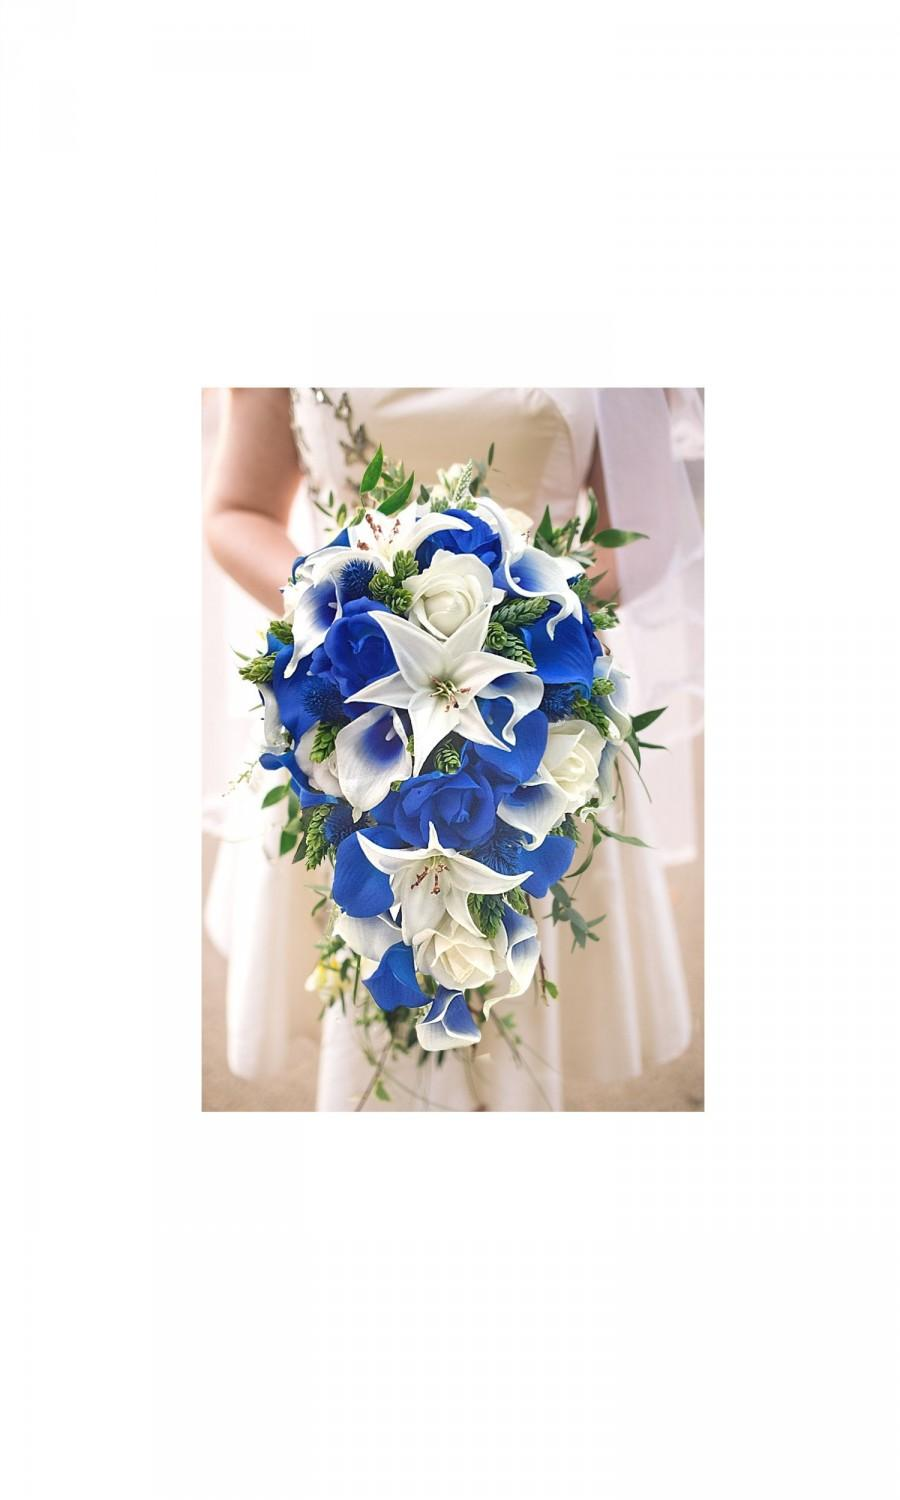 Hochzeit - Real Touch Royal Blue Picasso Calla Lilies Royal Blue Ivory Roses White Tiger Lilies, Eucalyptus Hops Ruscus Thistle Cascade Bridal Bouquet